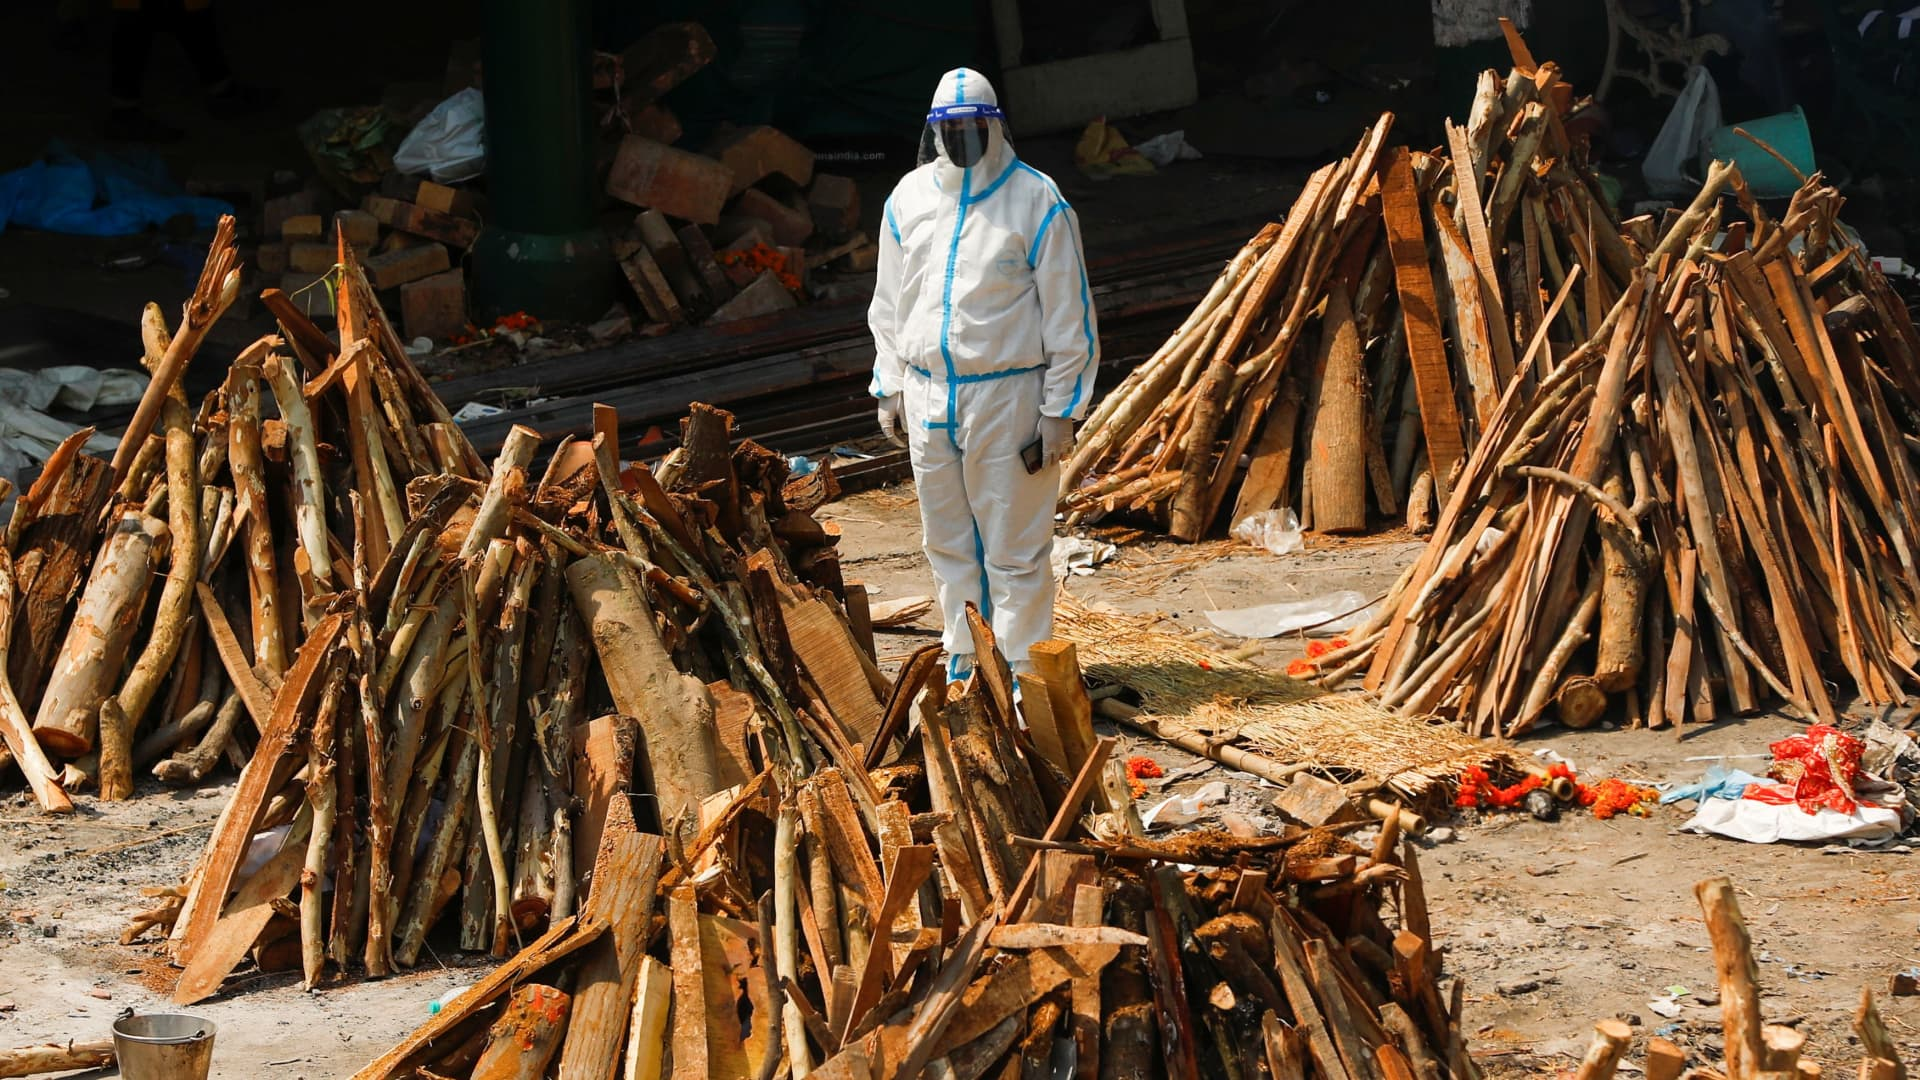 A man wearing personal protective equipment (PPE) stands next to funeral pyres of those who died from the coronavirus disease (COVID-19), during a mass cremation, at a crematorium in New Delhi, India April 26, 2021.